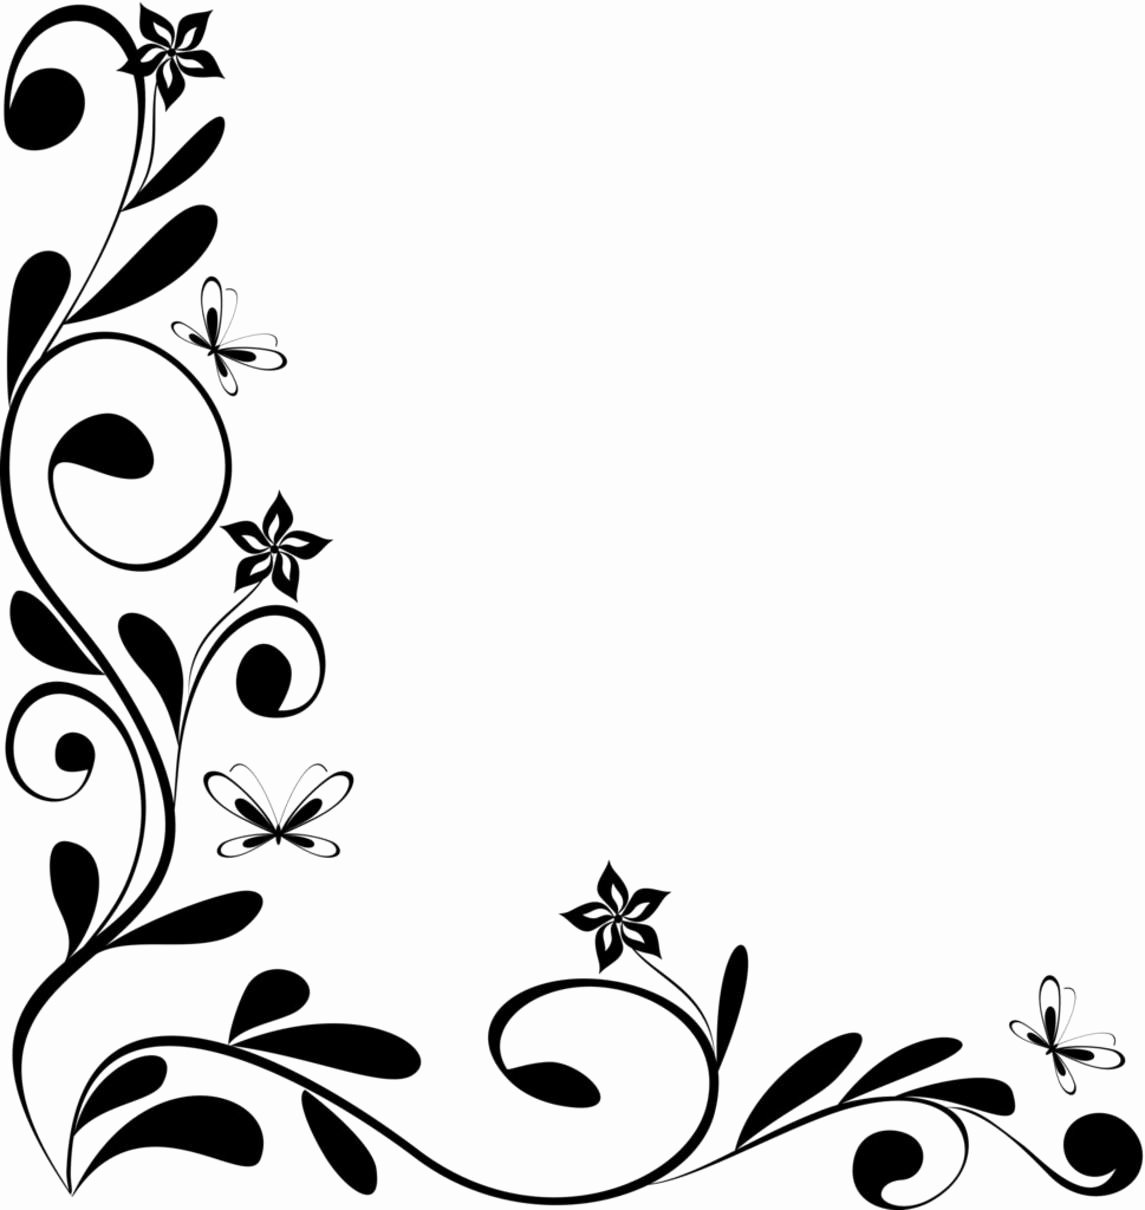 Nativity Silhouette Patterns Download Fresh Cool Drawing Patterns at Getdrawings